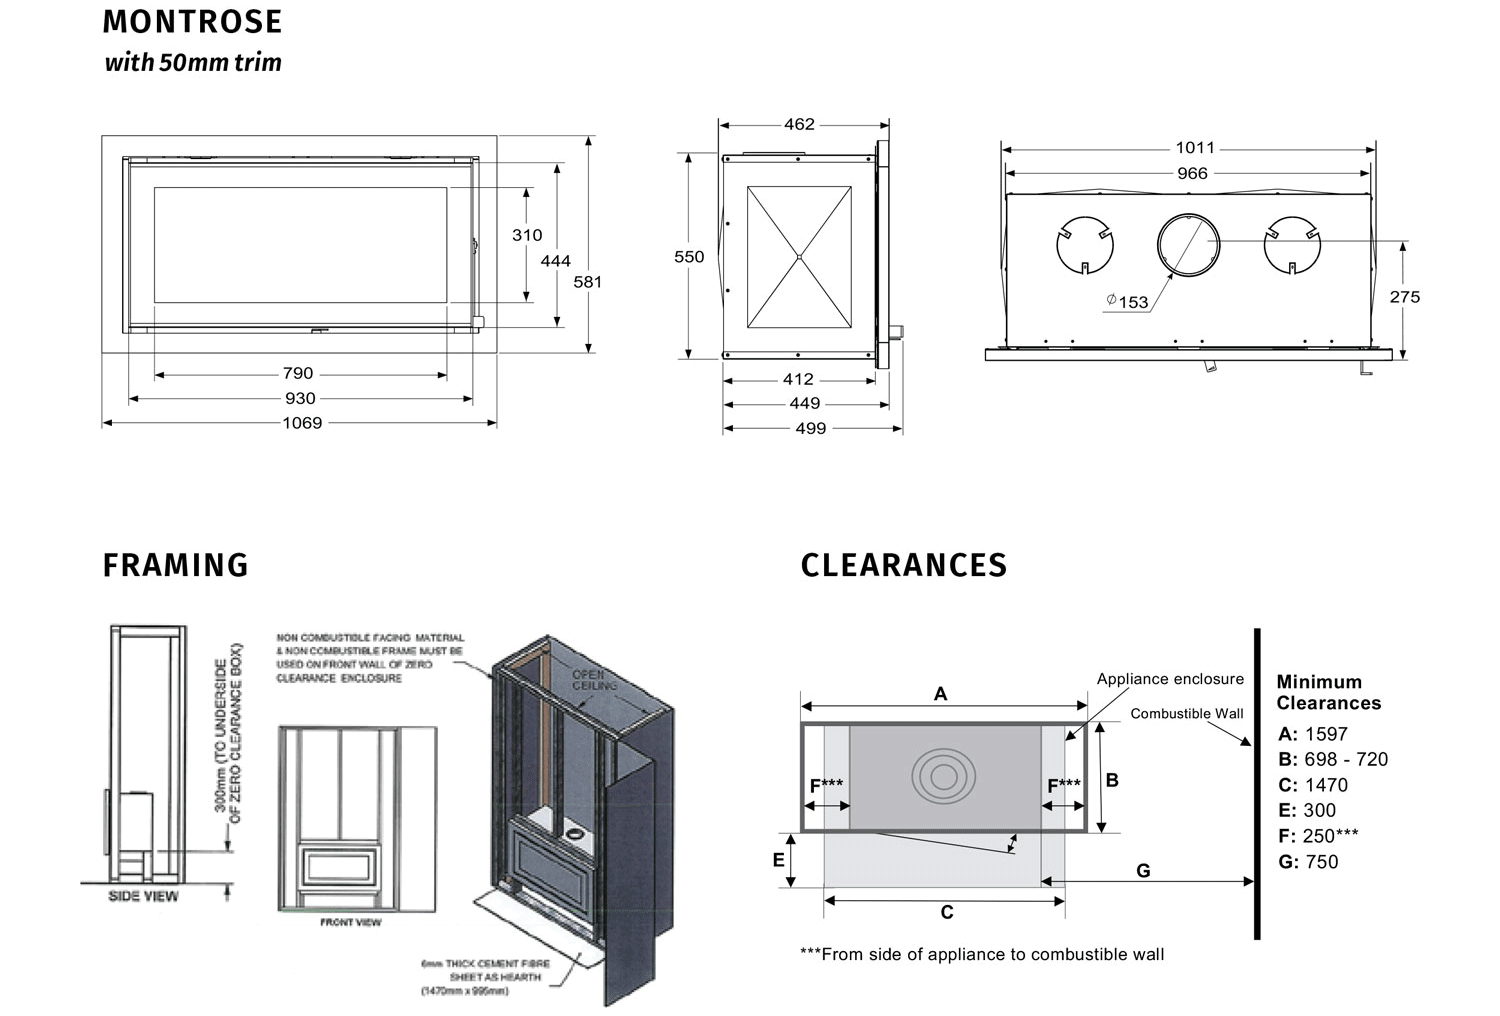 Regency Montrose dimensions, framing and clearances